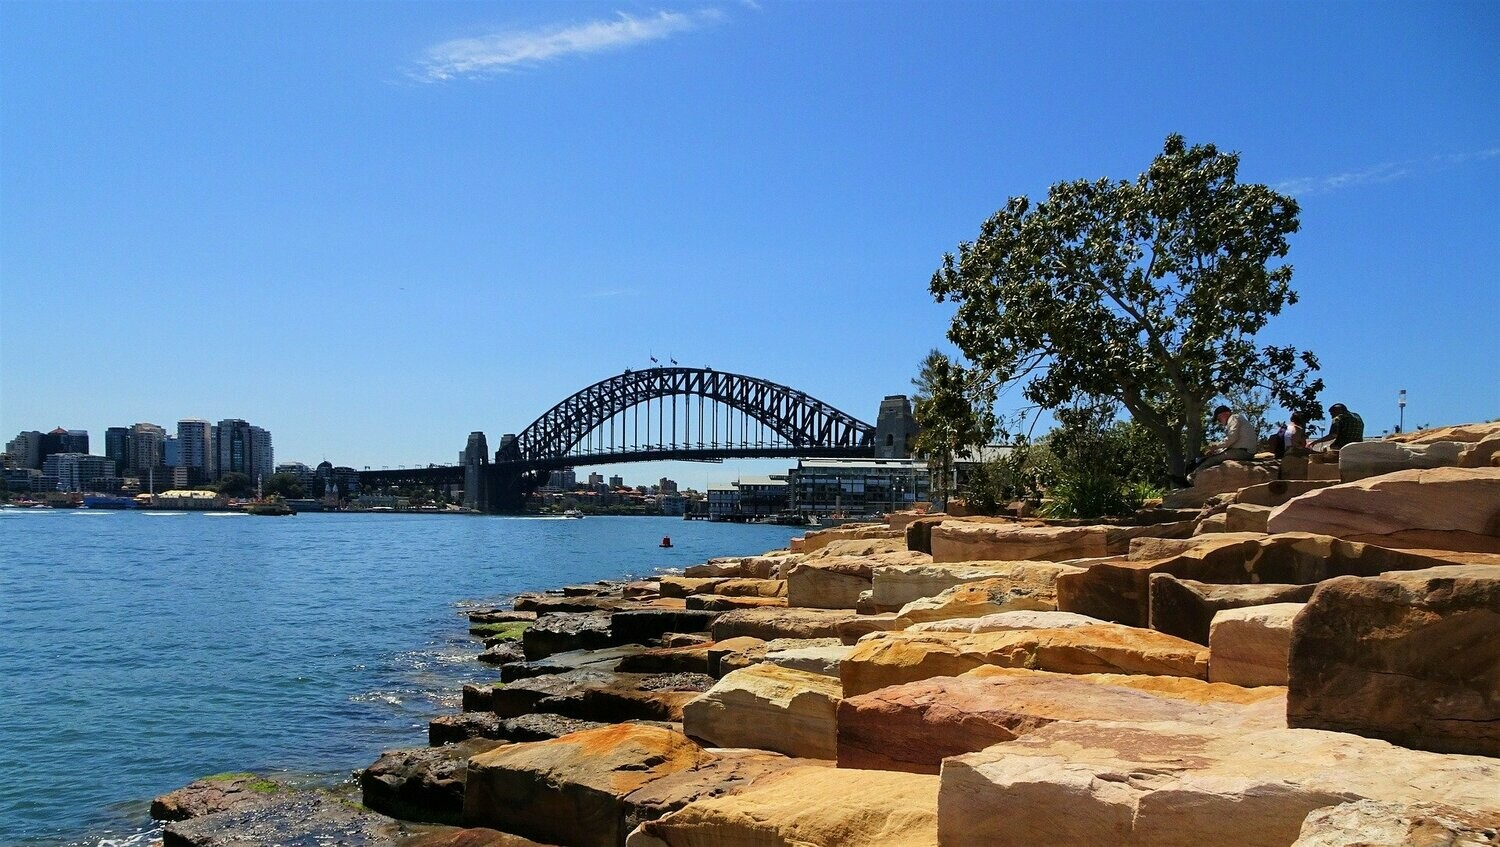 Sydney Harbour Bridge - Full Drill Diamond Painting - Specially ordered for you. Delivery is approximately 4 - 6 weeks.